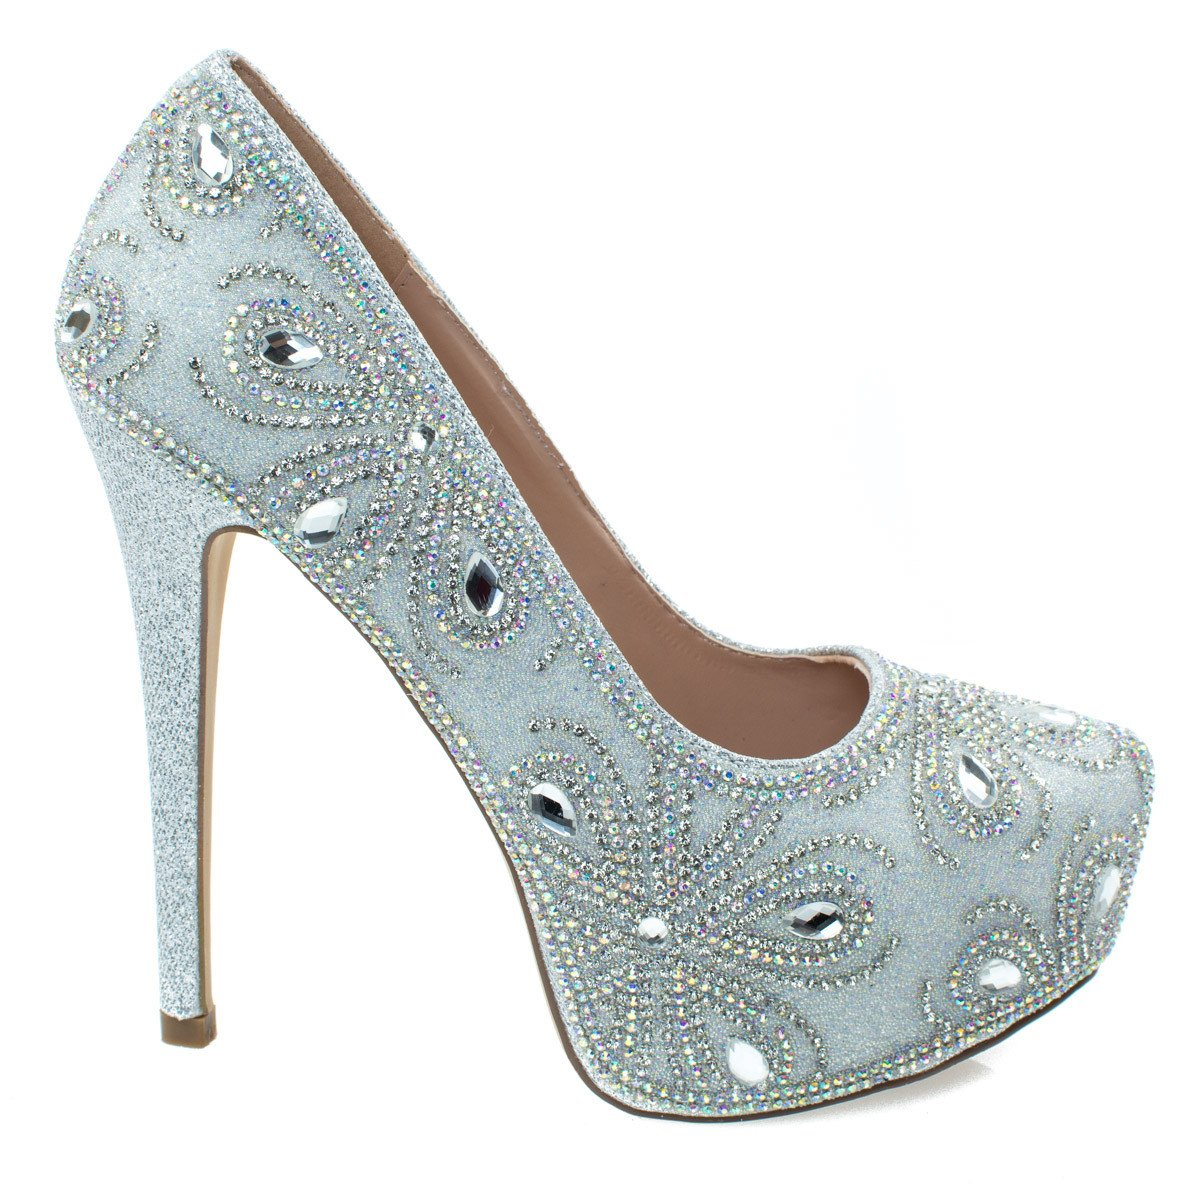 Kinko140 by Blossom, High Heel Stiletto Dress Pump w Hidden Platform & Rhinestone Glitter